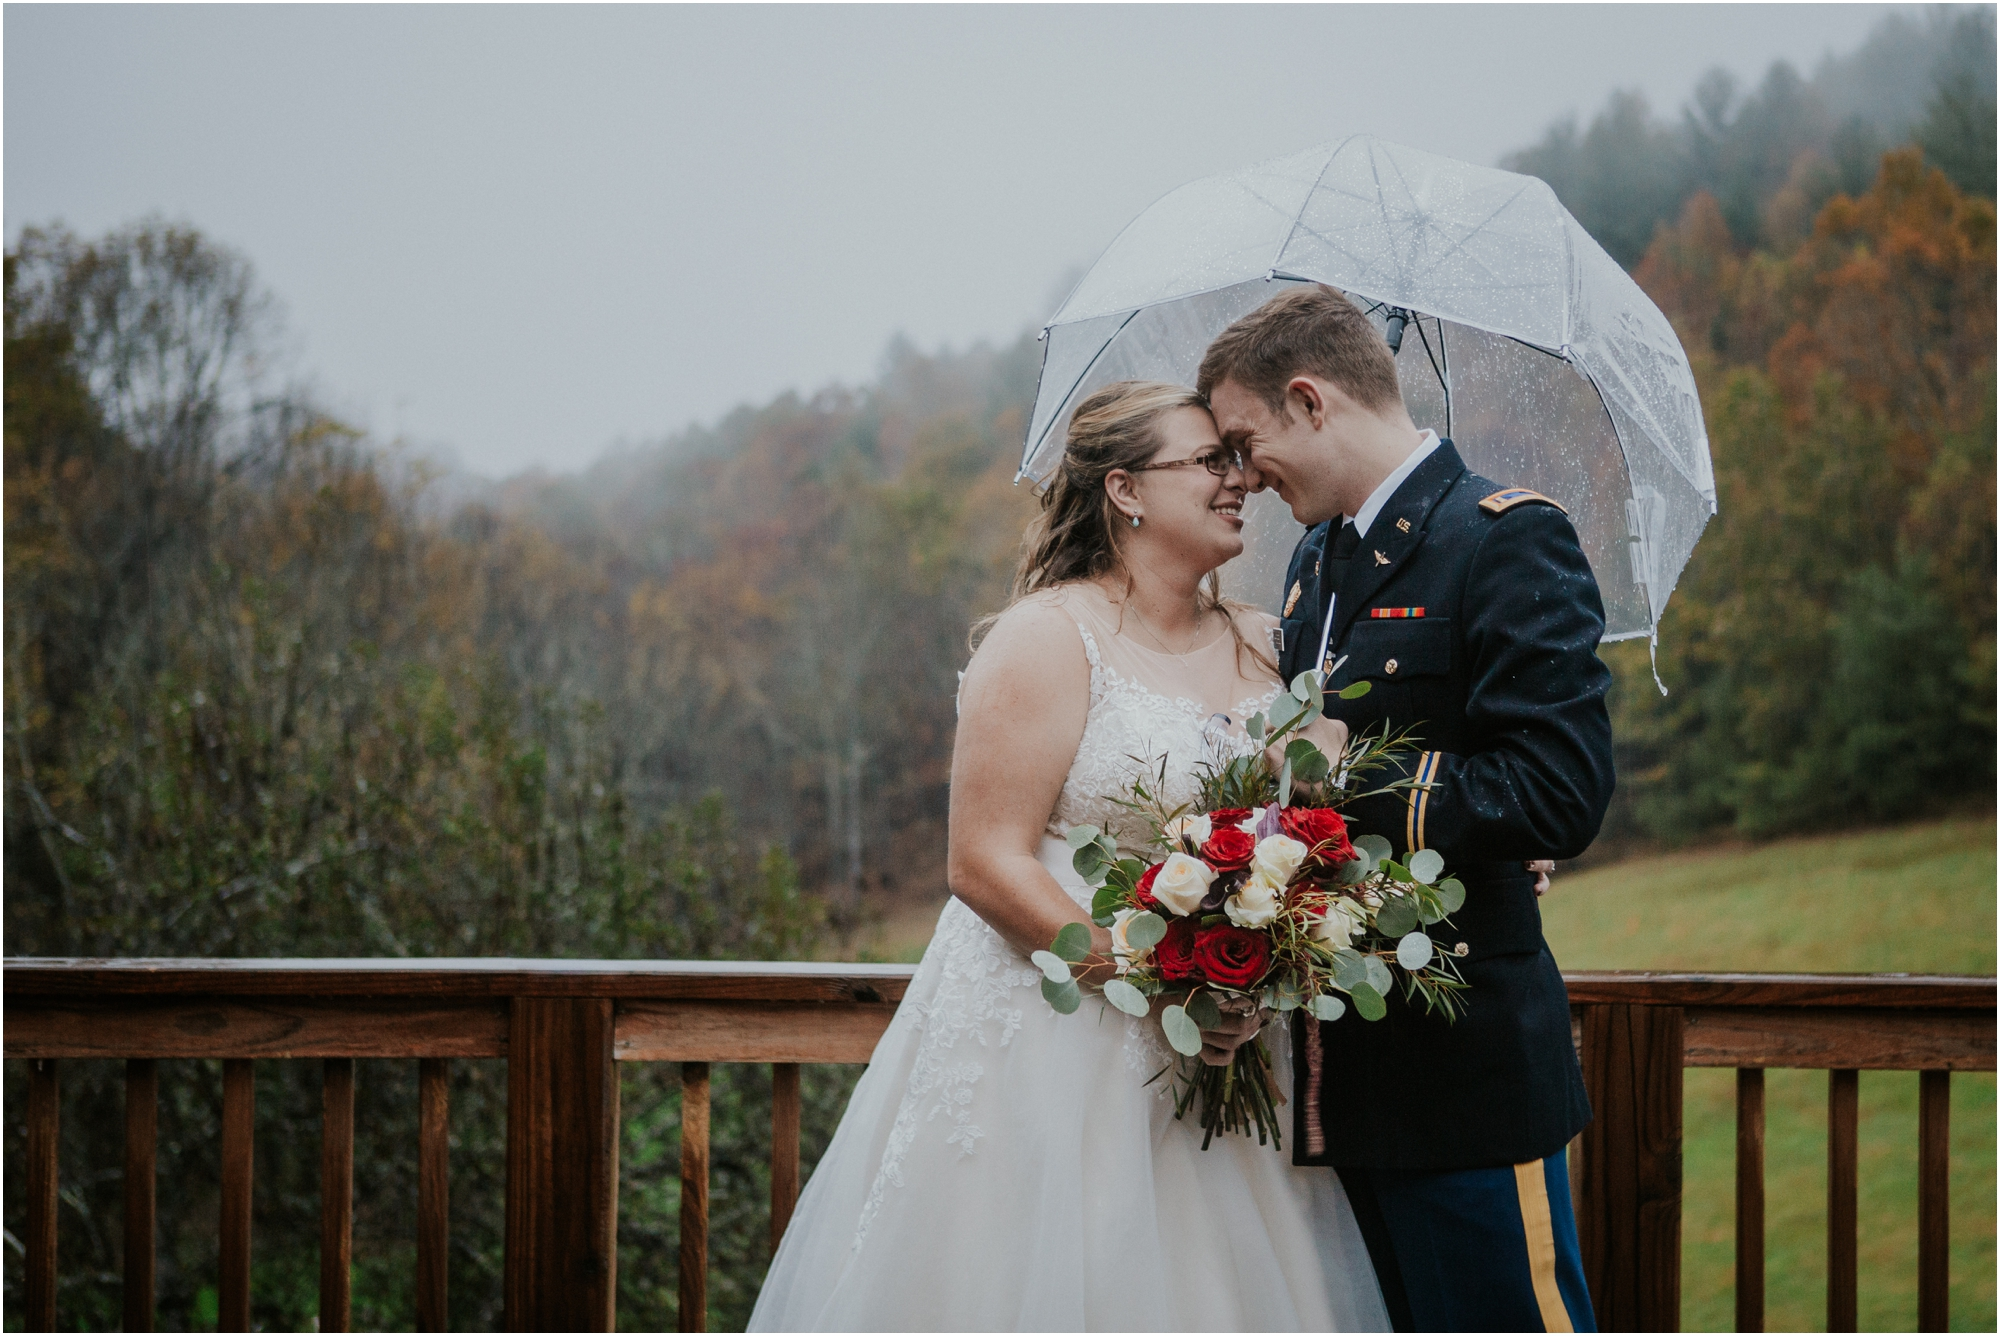 Sugar-Hollow-Retreat-Butler-Elizabethton-Tennessee-Rustic-Rainy-Wedding-Adventurous-Couple_0106.jpg